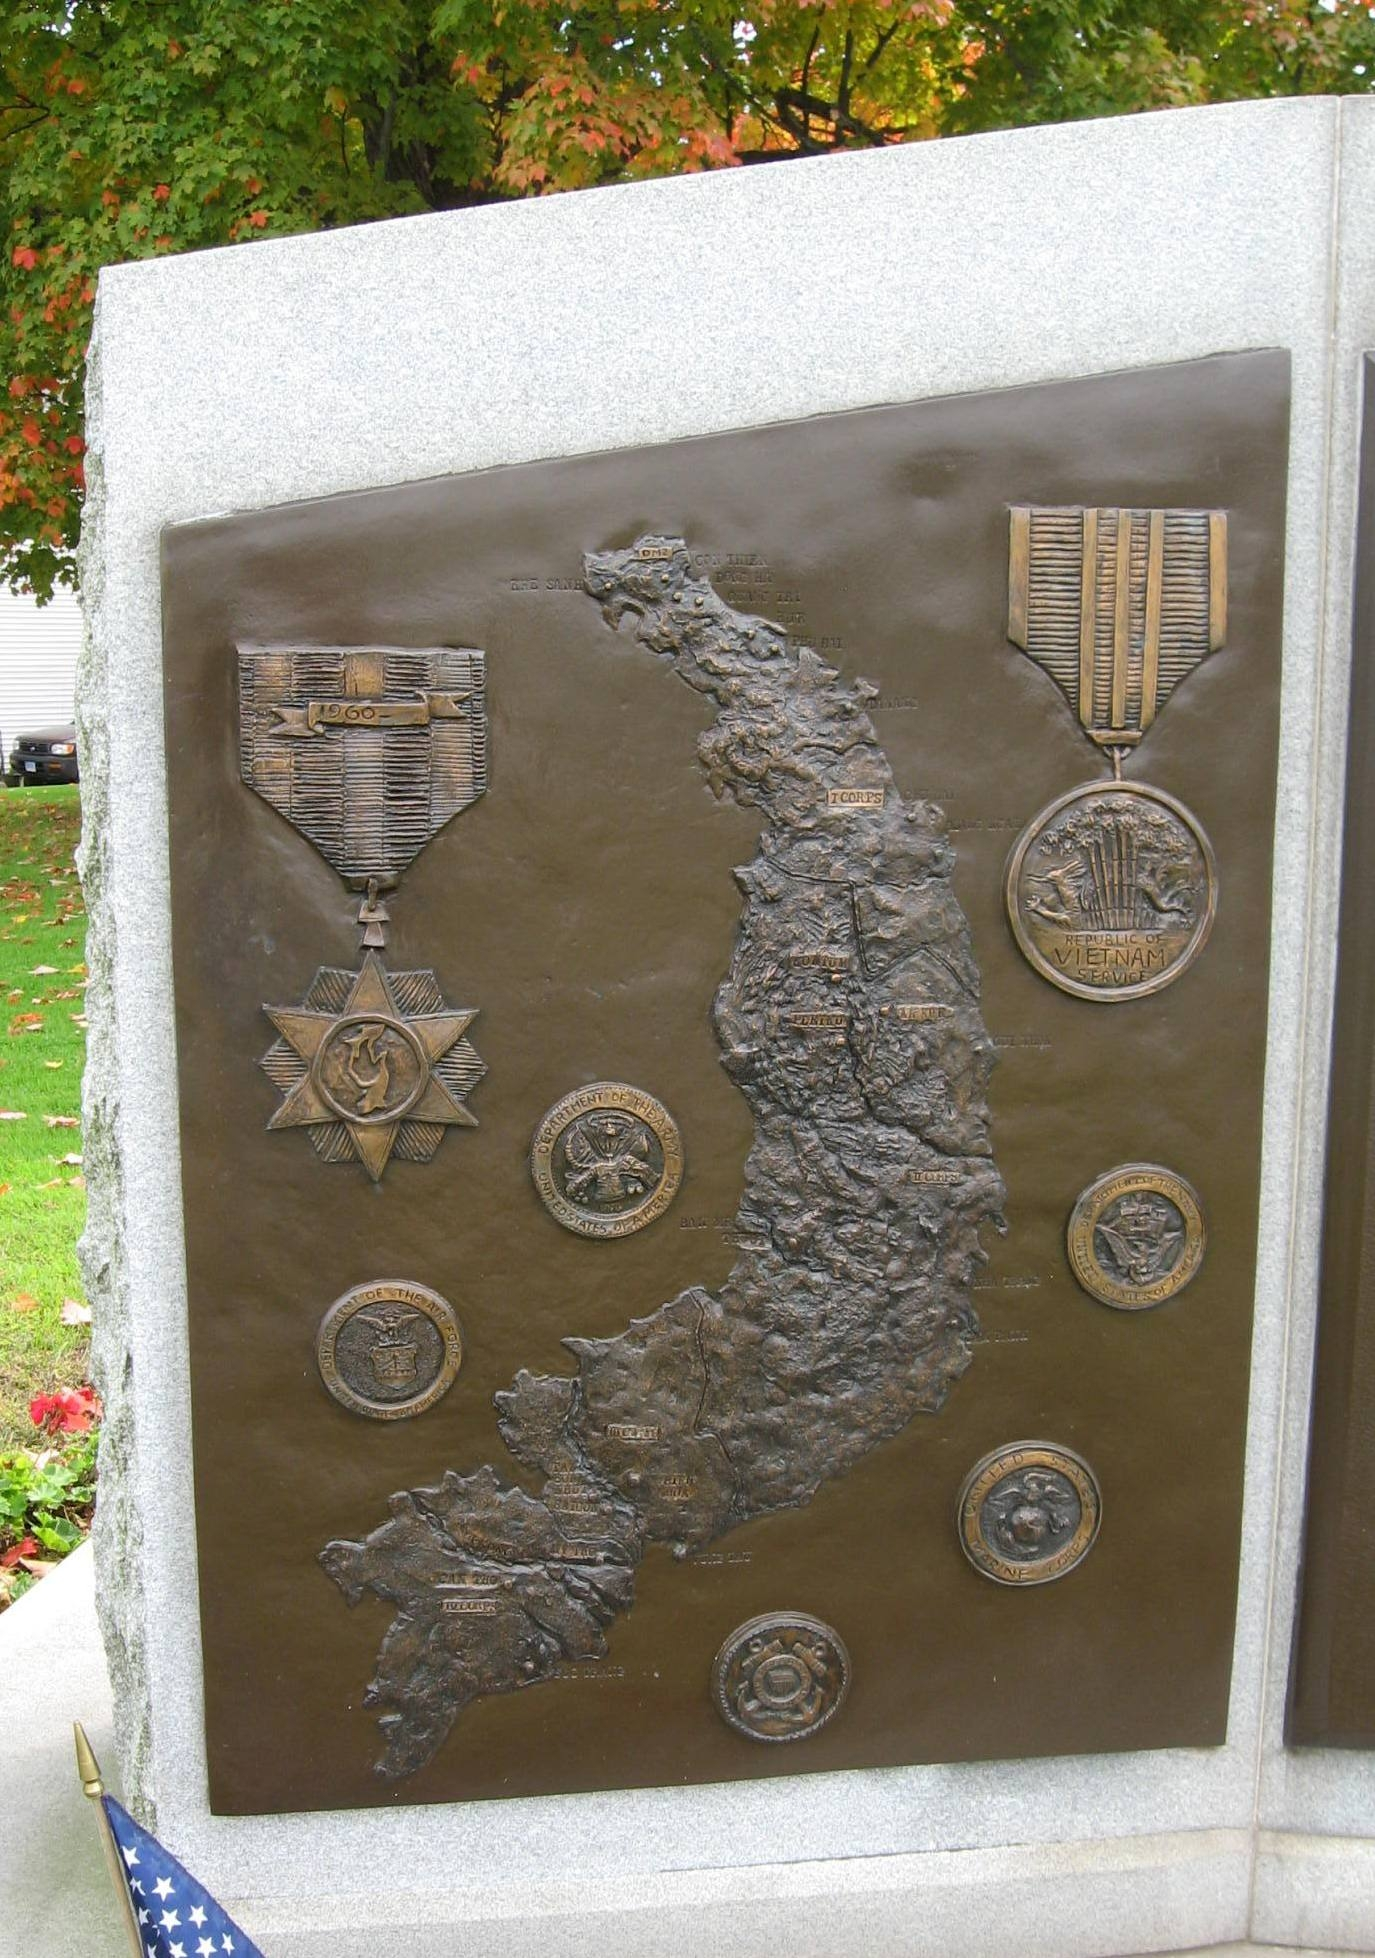 Danbury Area Vietnam War Memorial